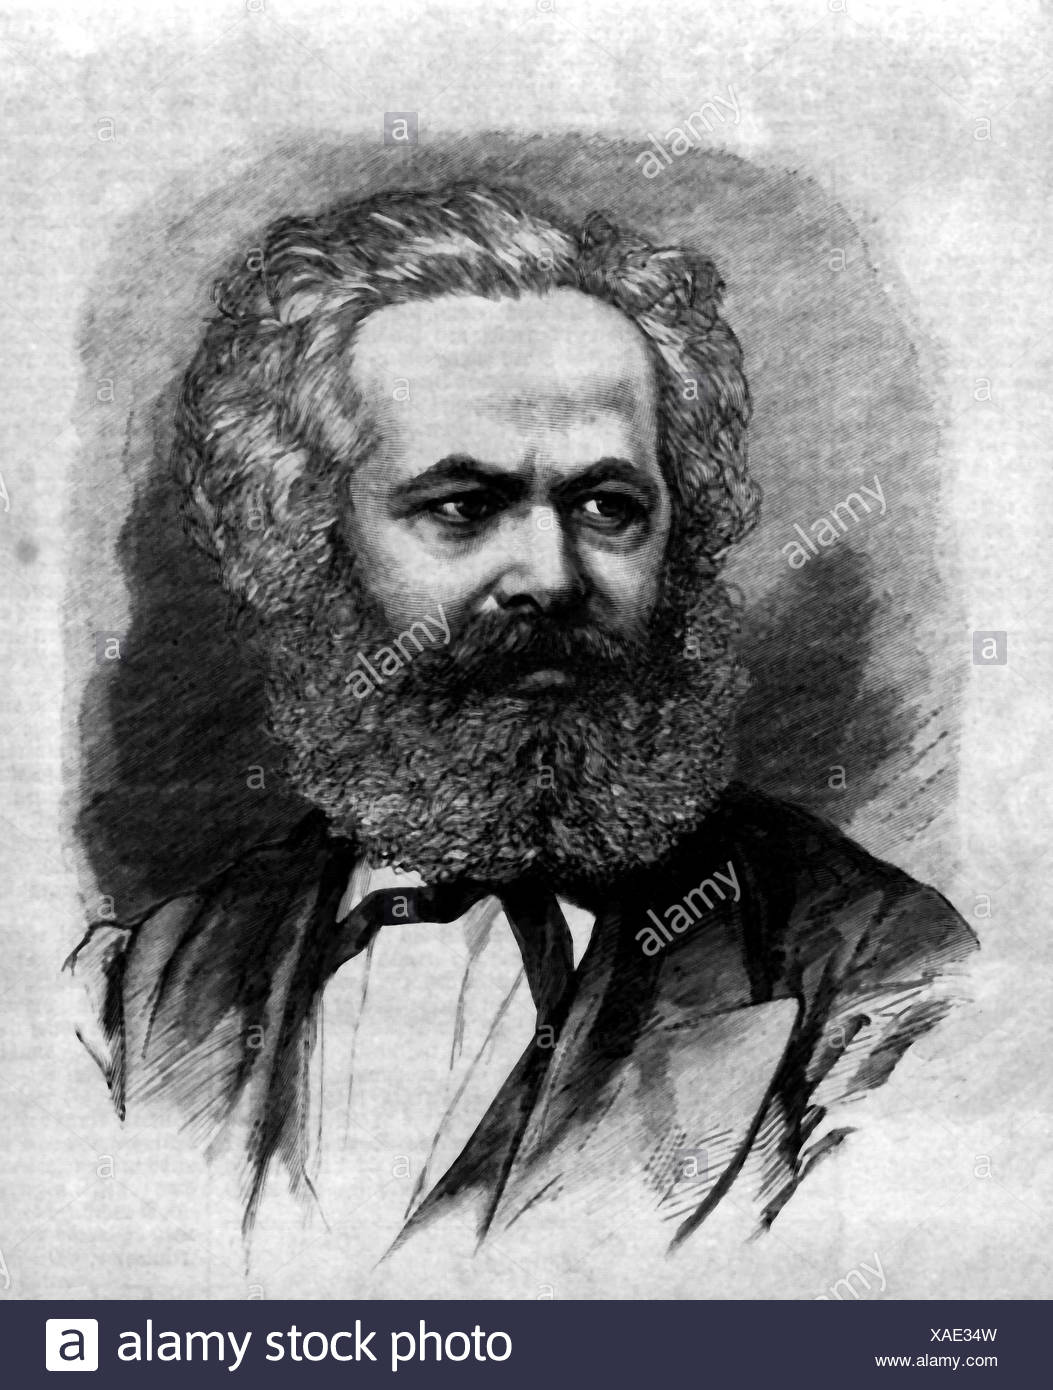 Marx, Karl, 5.5.1818 - 14.3.1883, German philosopher, portrait, engraving 1871, marxism, communism, 19th century, , Additional-Rights-Clearances-NA - Stock Image